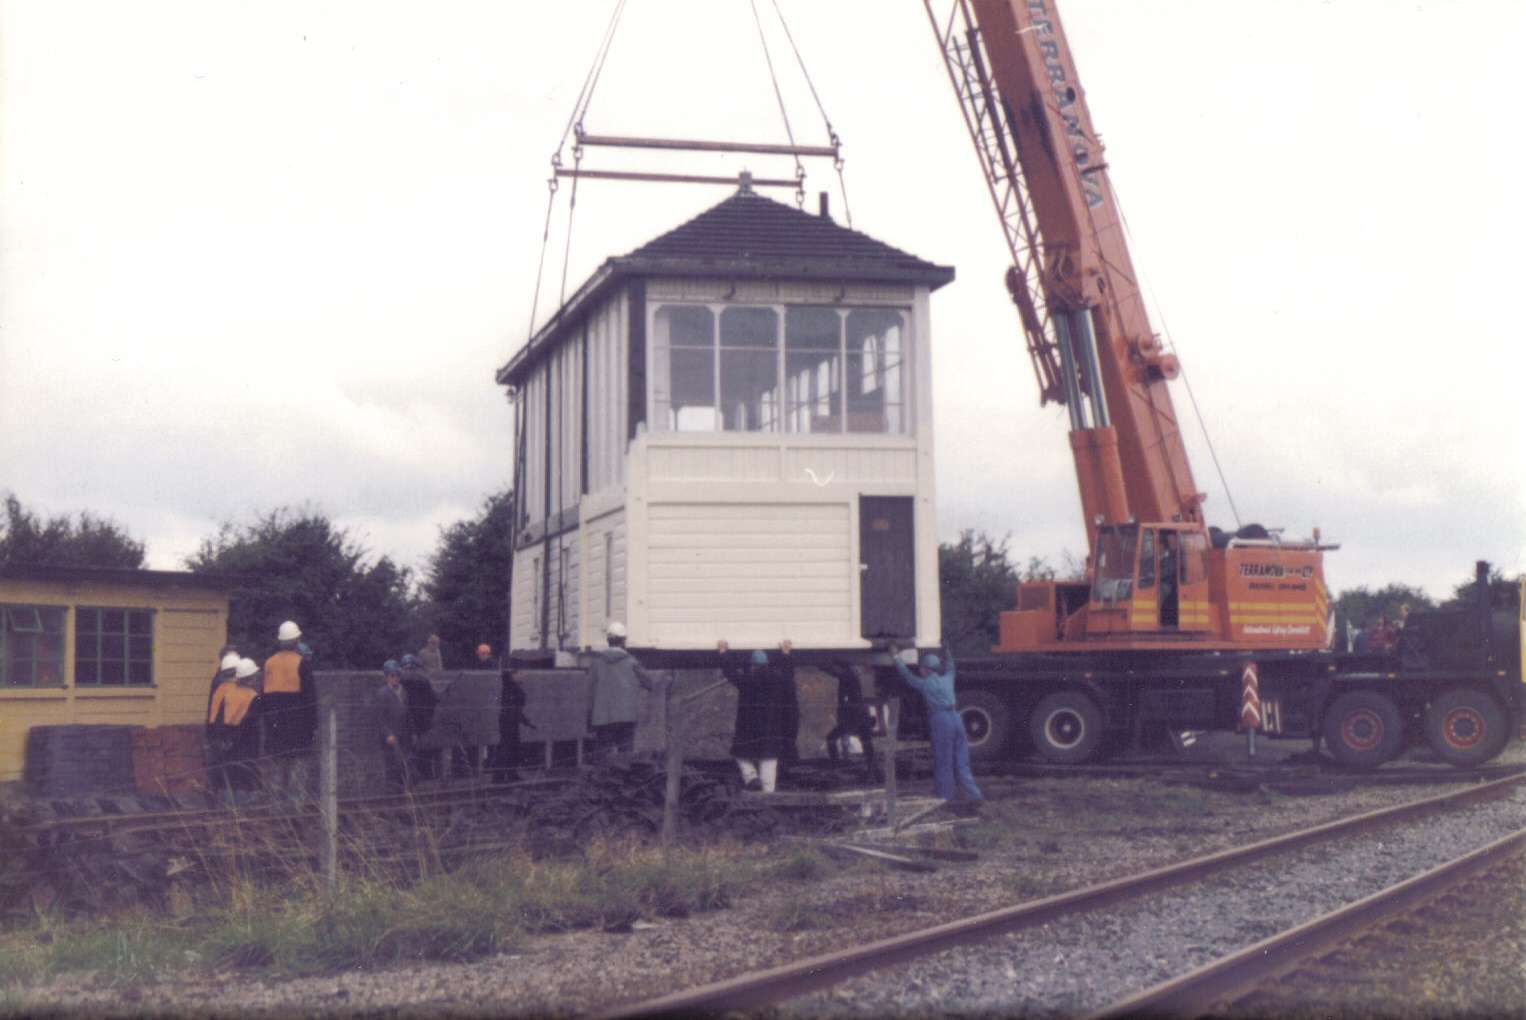 Harlington box being transfered from Up to Down Yard under Engineering possession of the British Rail line